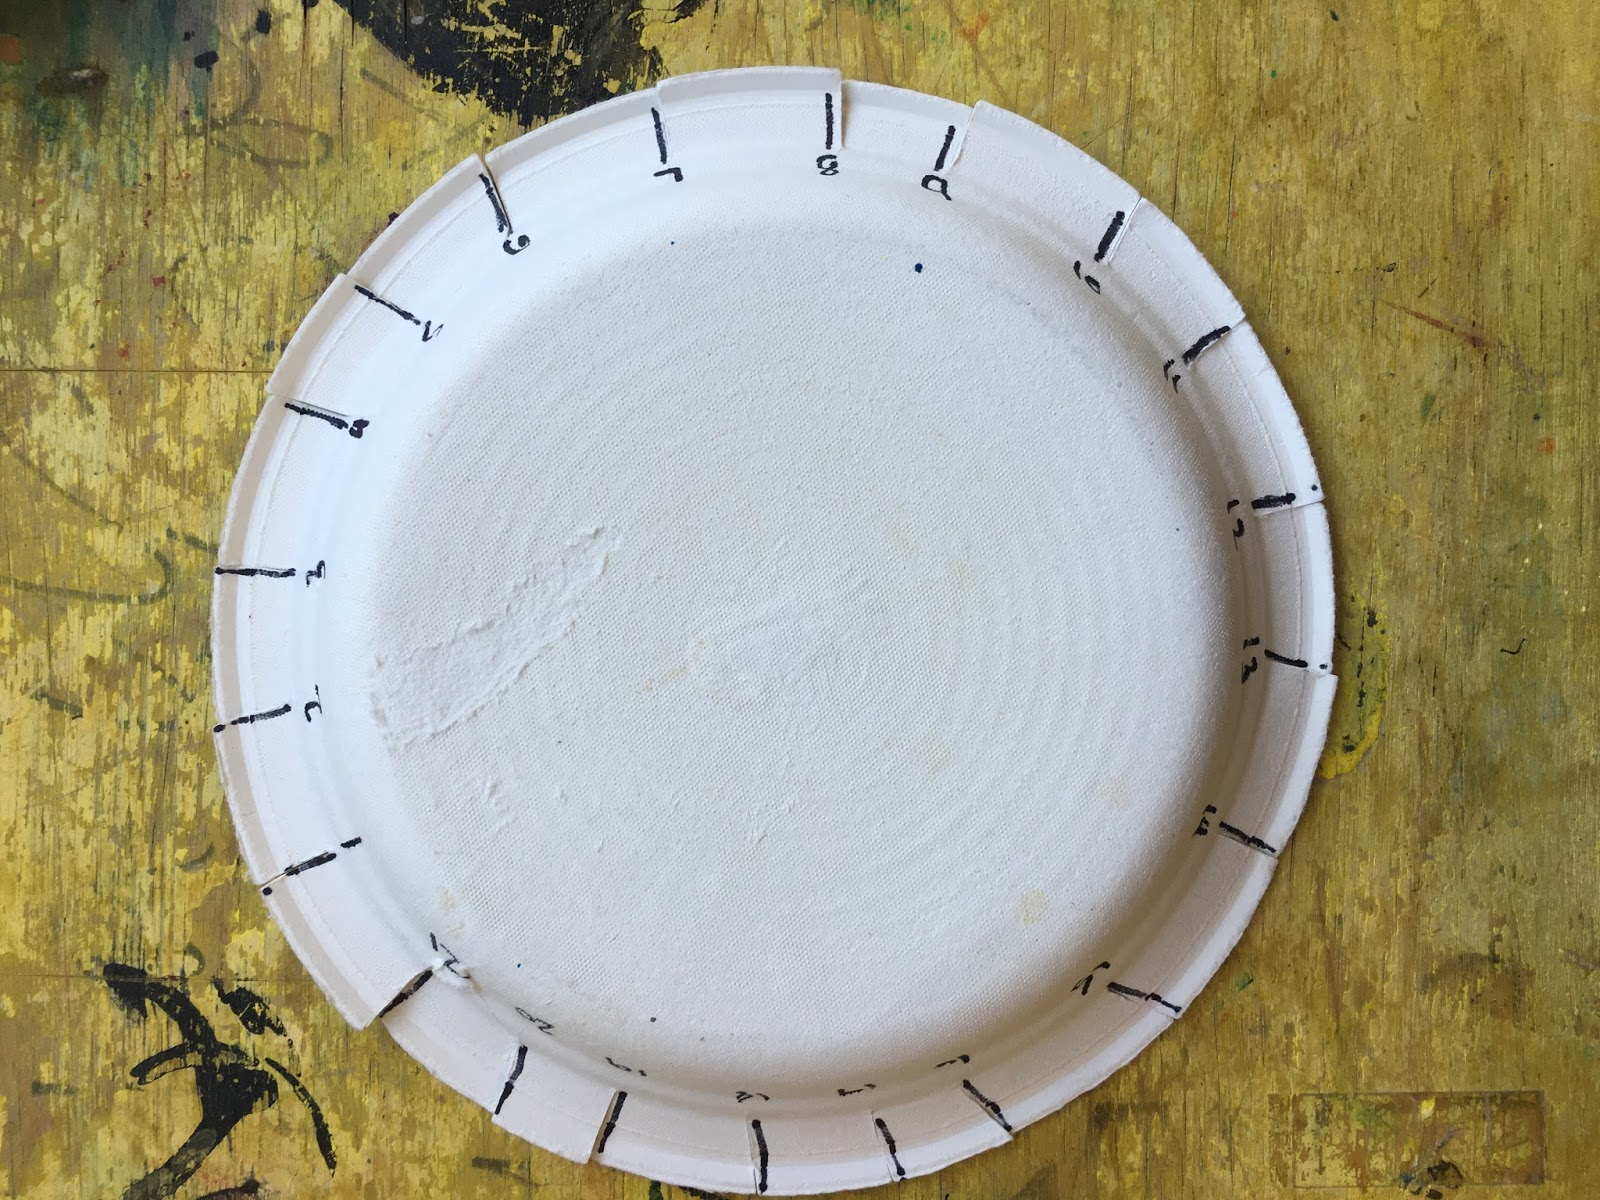 Make 21 marks on a paper plate (Chinet brand works really well!). Number the marks 1-21 and make a .5\u0027\u0027 cut on each mark. & Paper Plate Weaving-Make a Yarn Bowl!